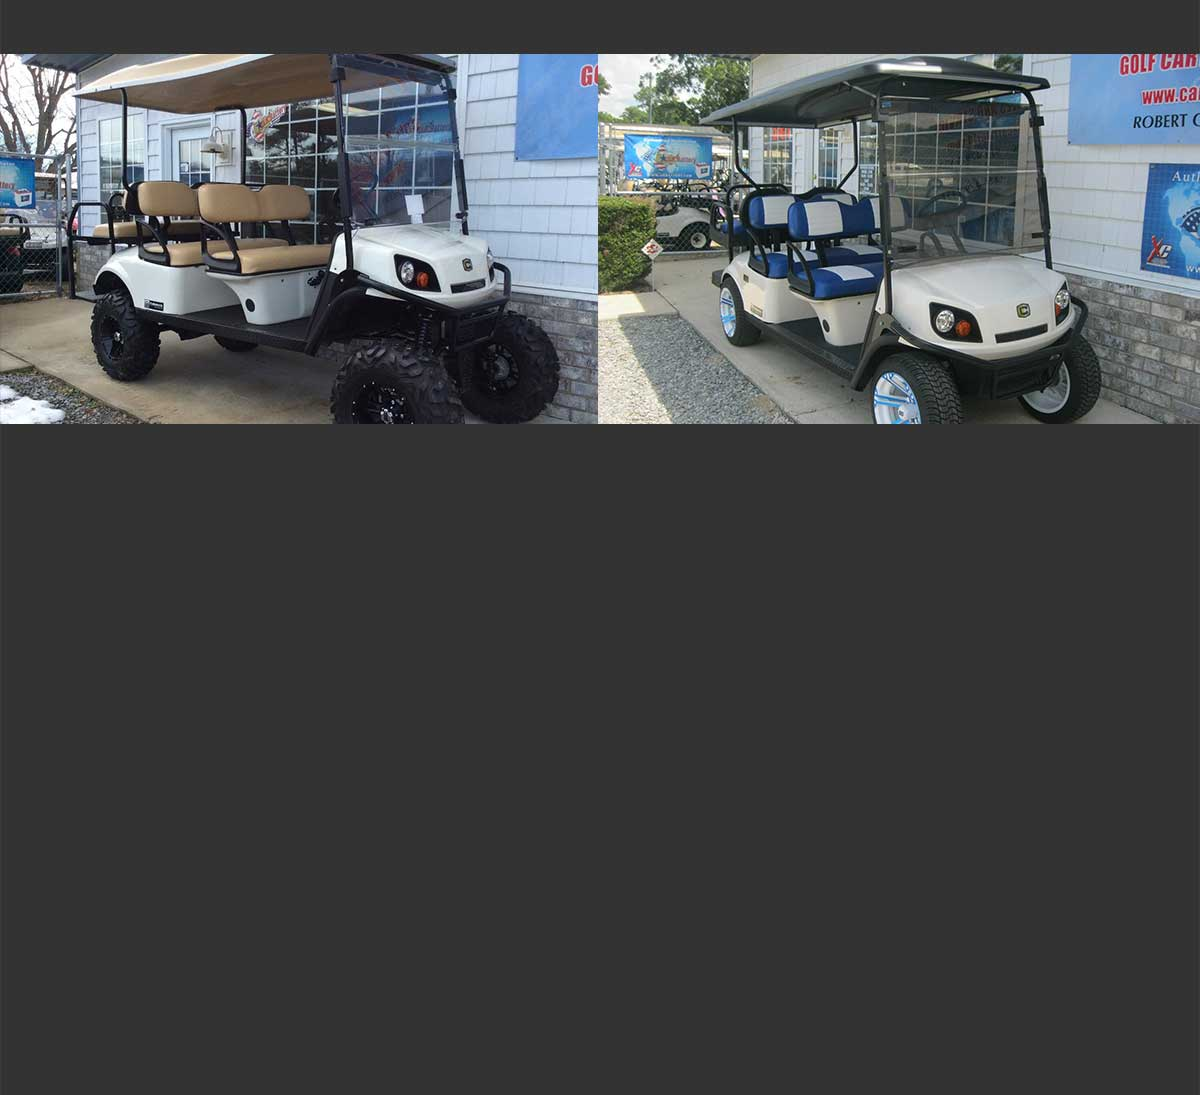 Used Western Golf Carts on antique western golf carts, used lifted golf carts, ezgo western golf carts, used custom golf carts, used hunting golf carts, used western golf cars, who makes western golf carts, used par car golf carts, used gem golf carts, used gas golf carts, electric western golf carts,